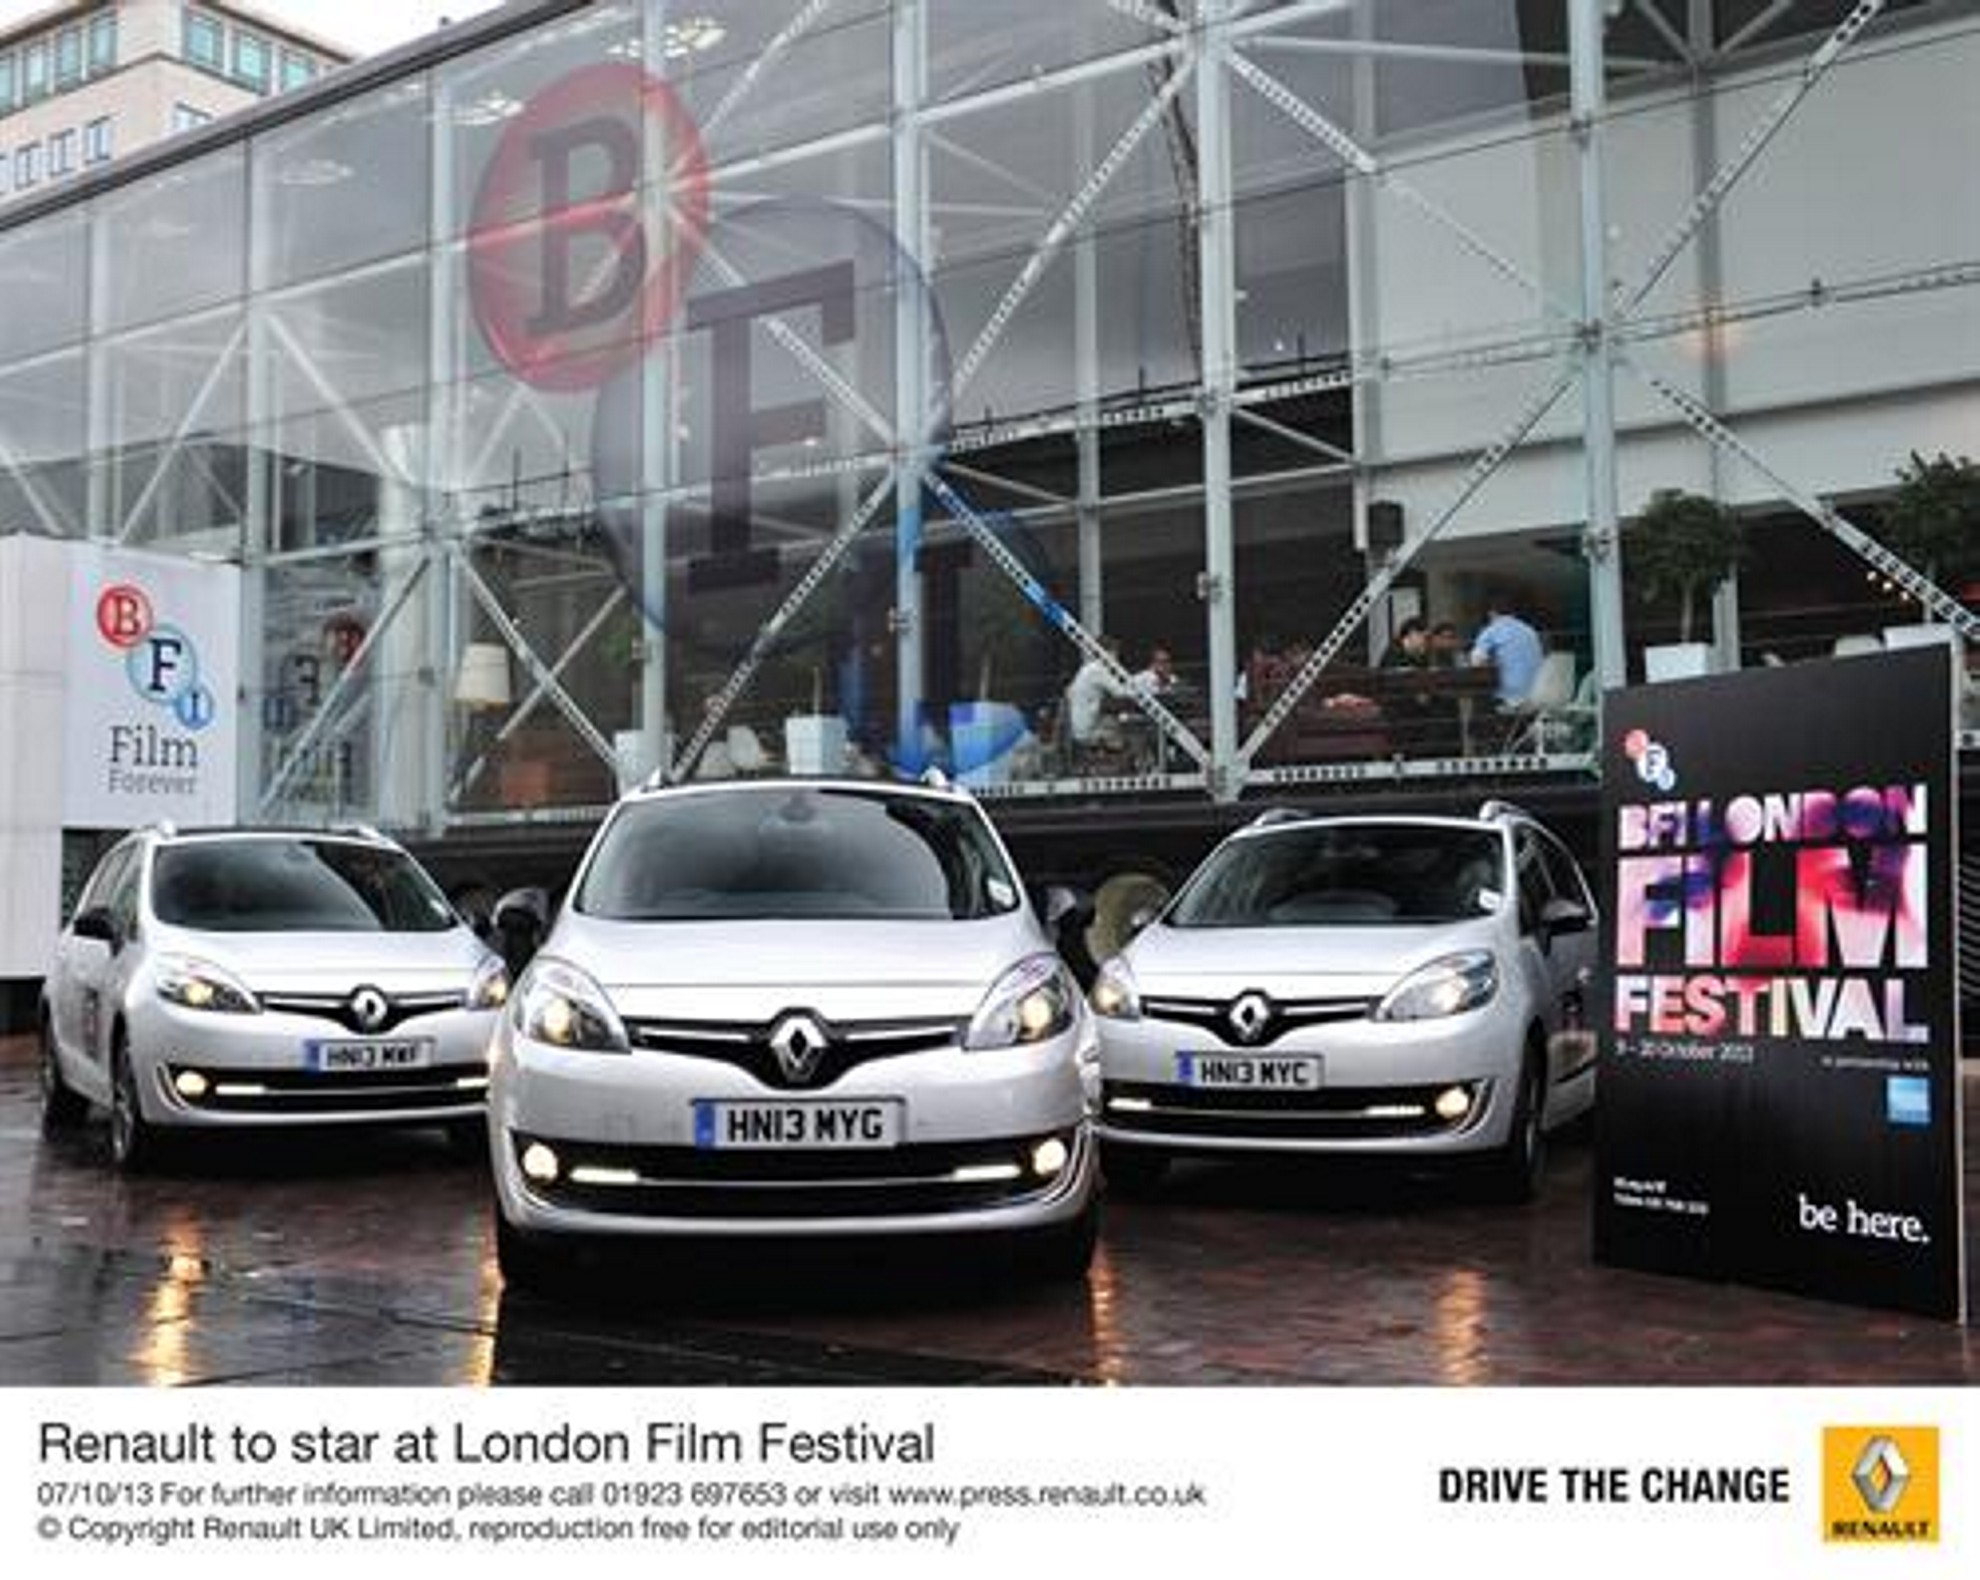 Renault - London Film Festival